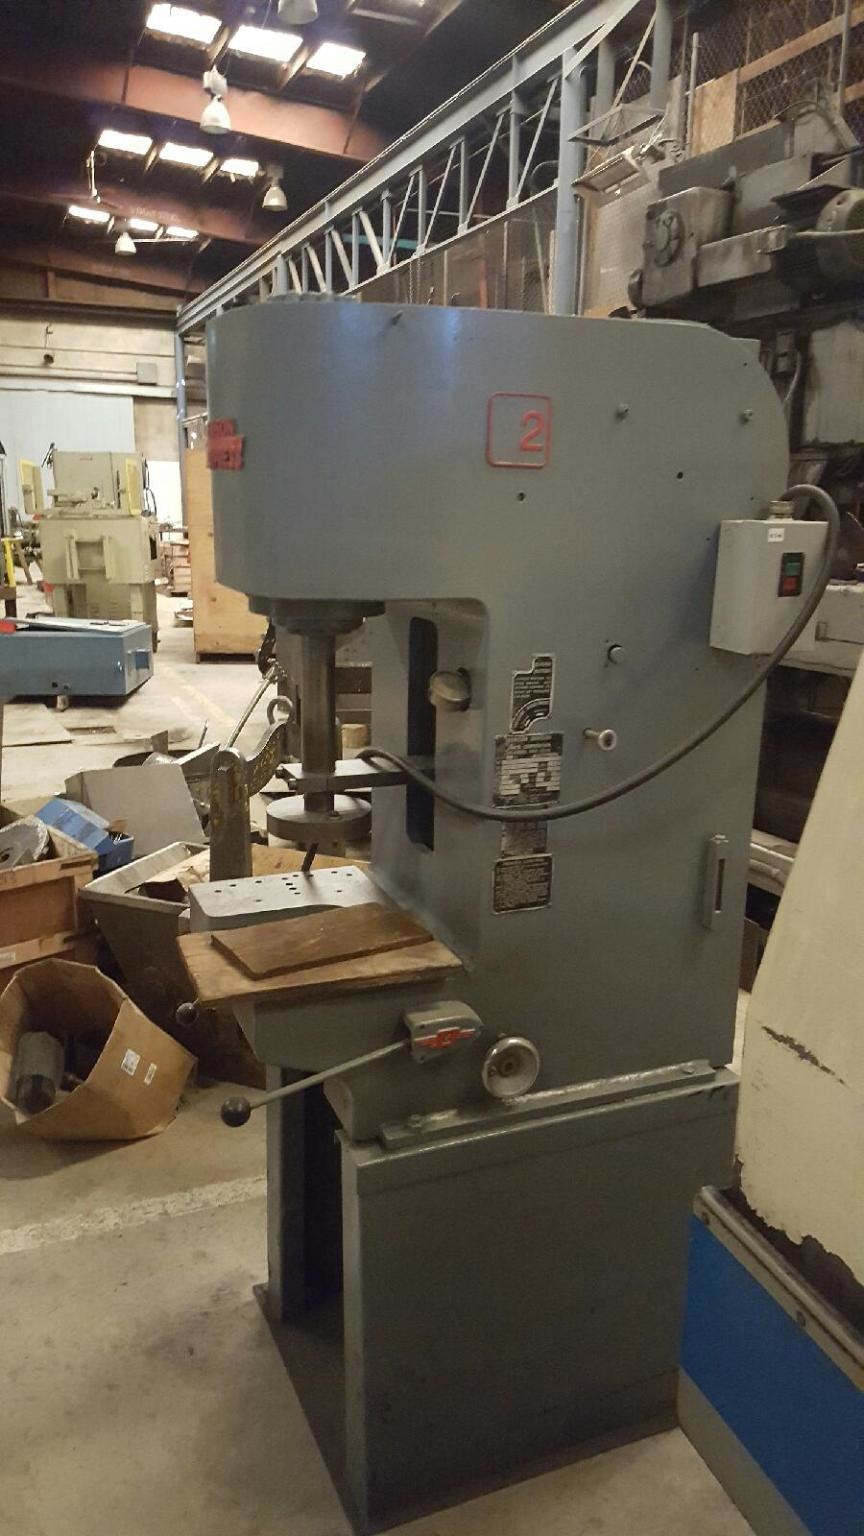 1 - PREOWNED DENISON C-FRAME HYDRAULIC PRESS, 8 TON,<br>MODEL #: S087MC261D267C221A59S206 S/N: 20886, YEAR: 1967